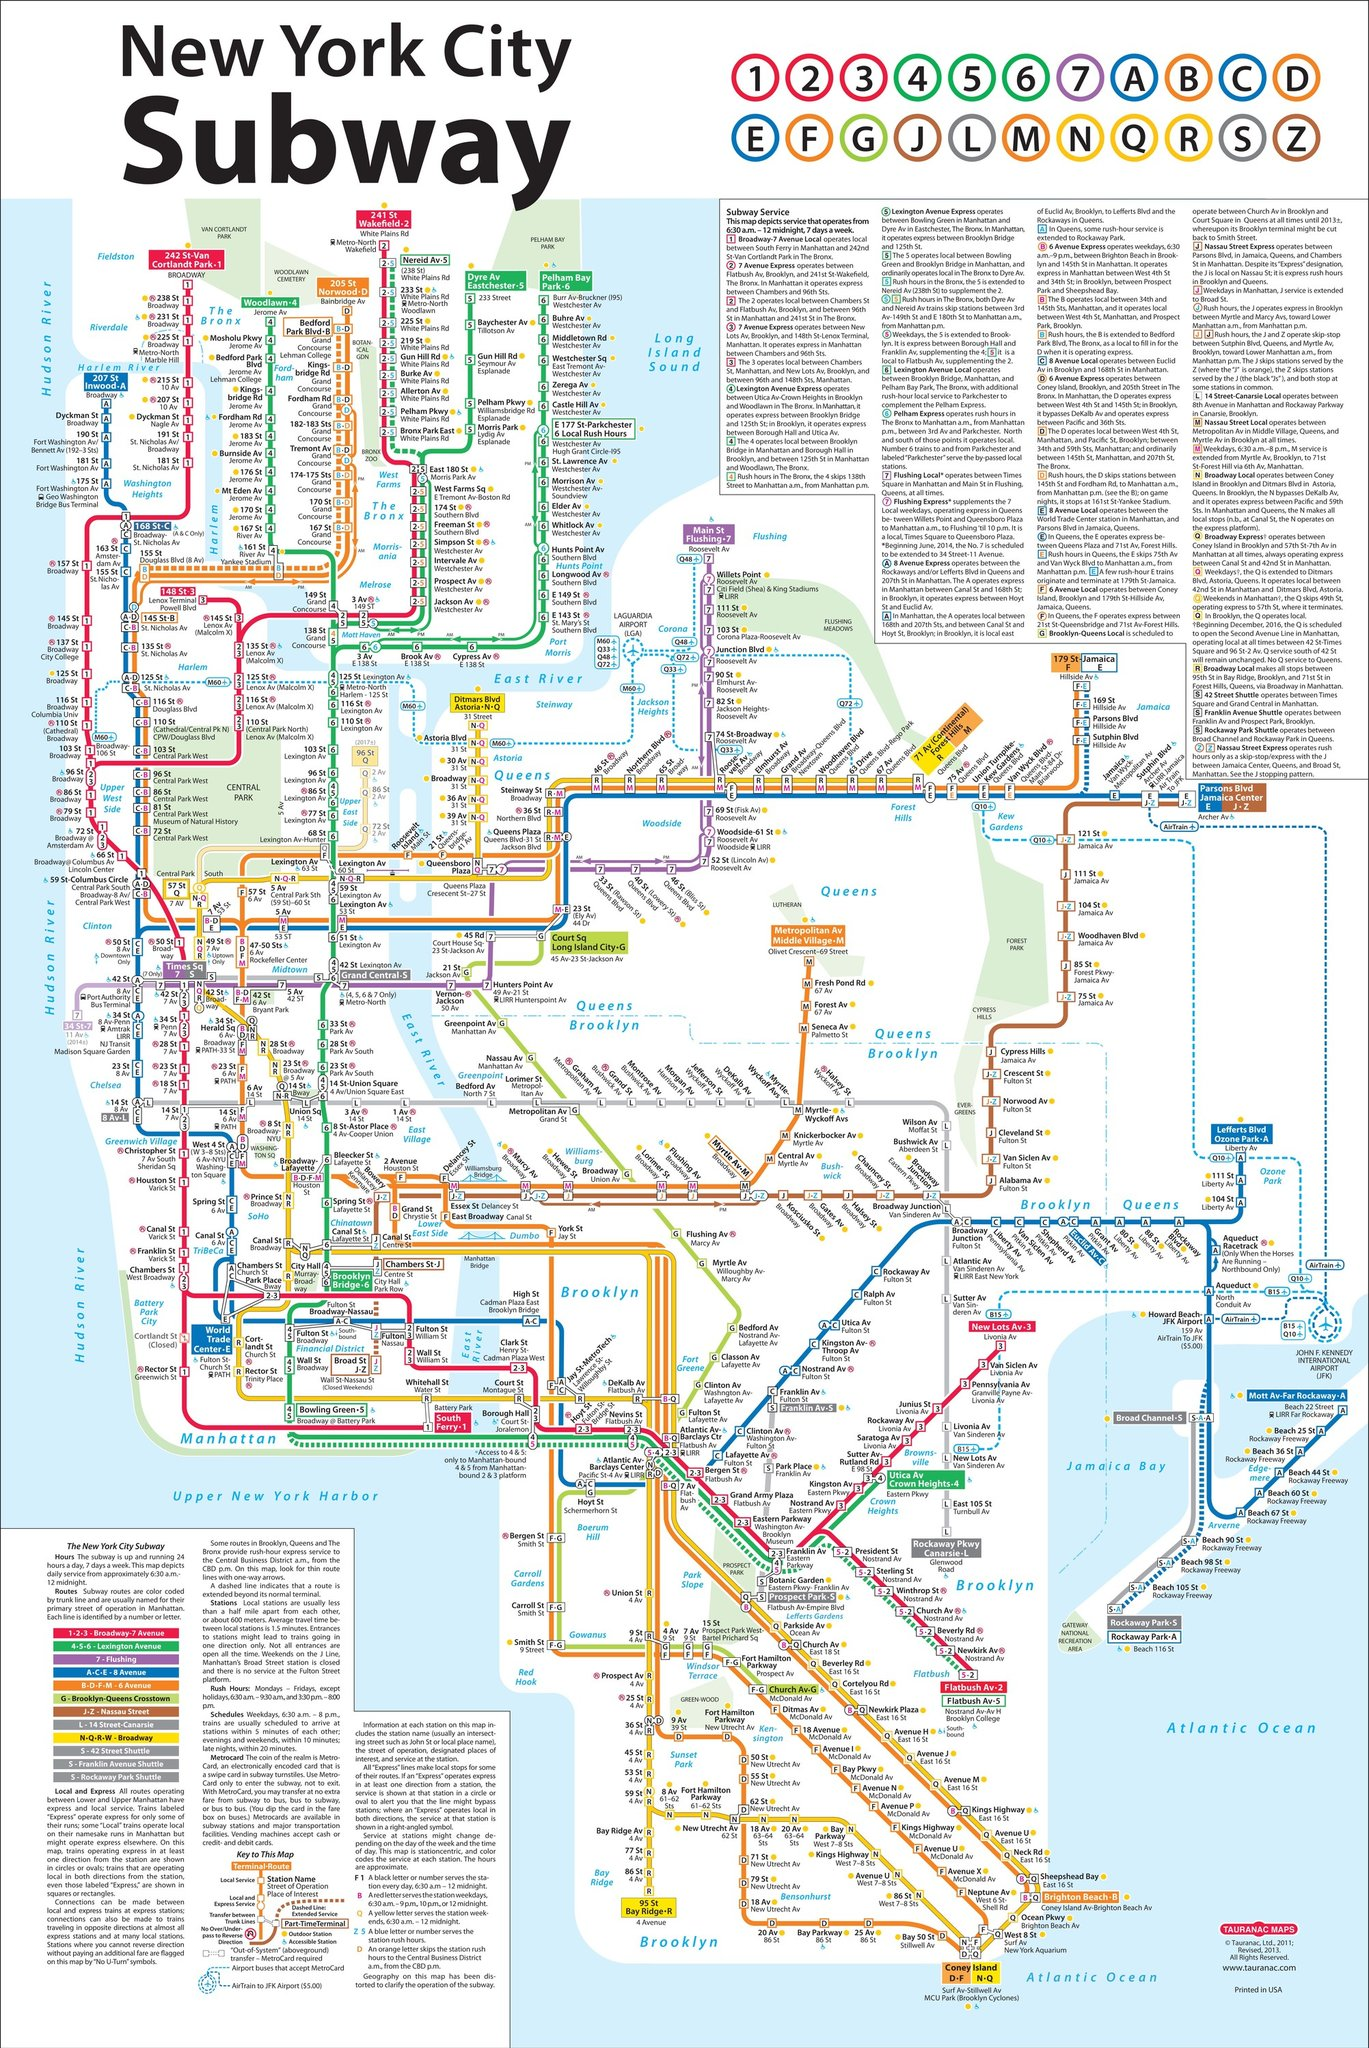 new york city subway diagram marine power 5 7 wiring a redesign of the map from one its designers